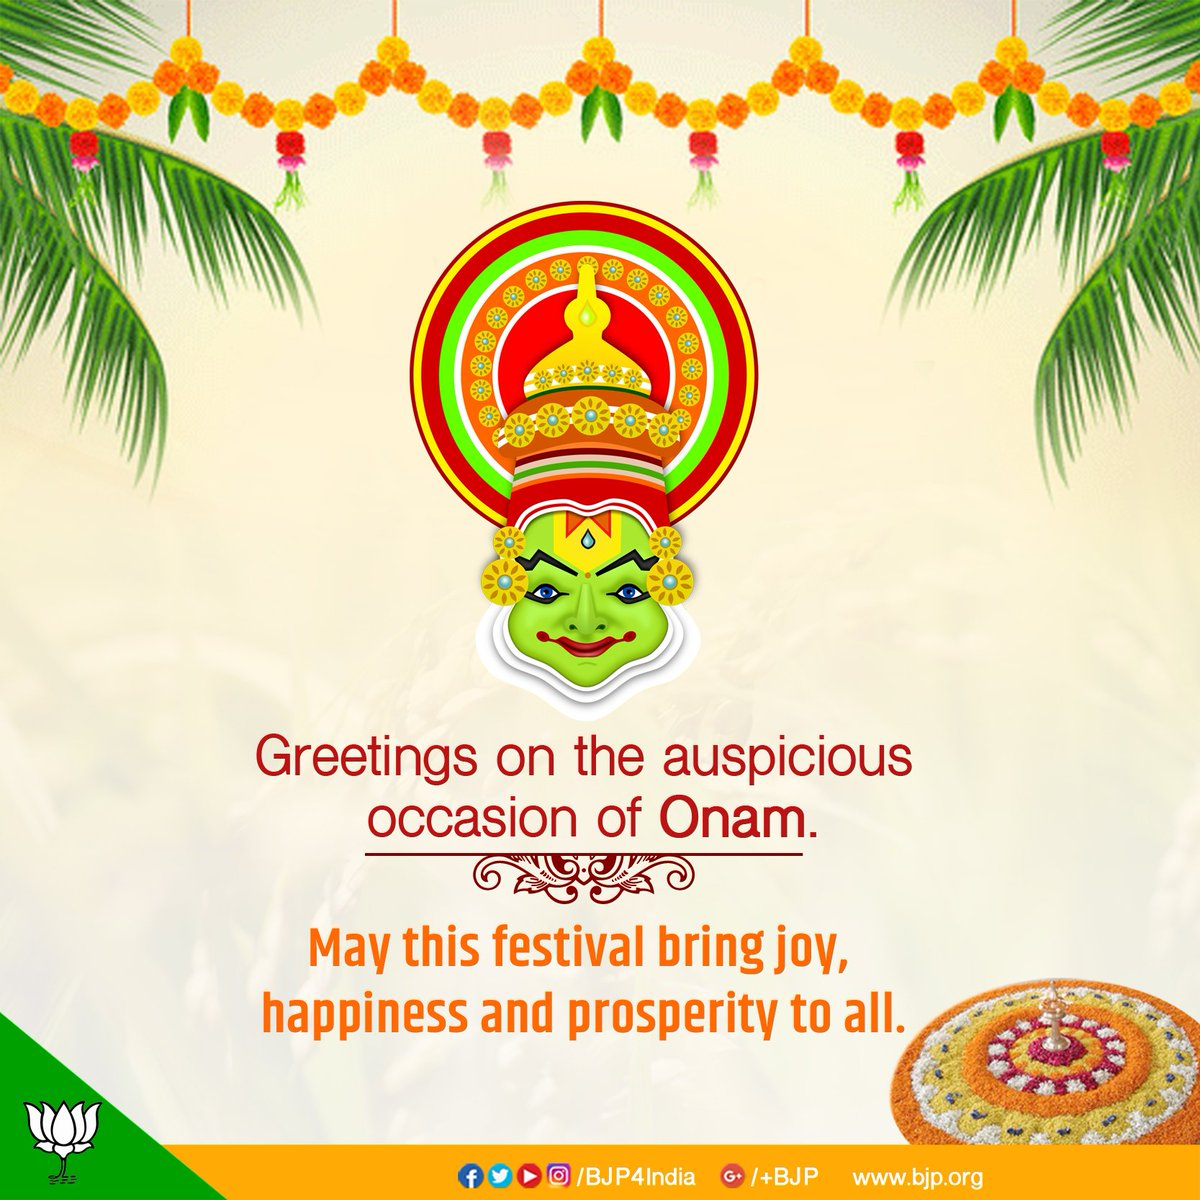 Bjp On Twitter Greetings On The Auspicious Occasion Of Onam